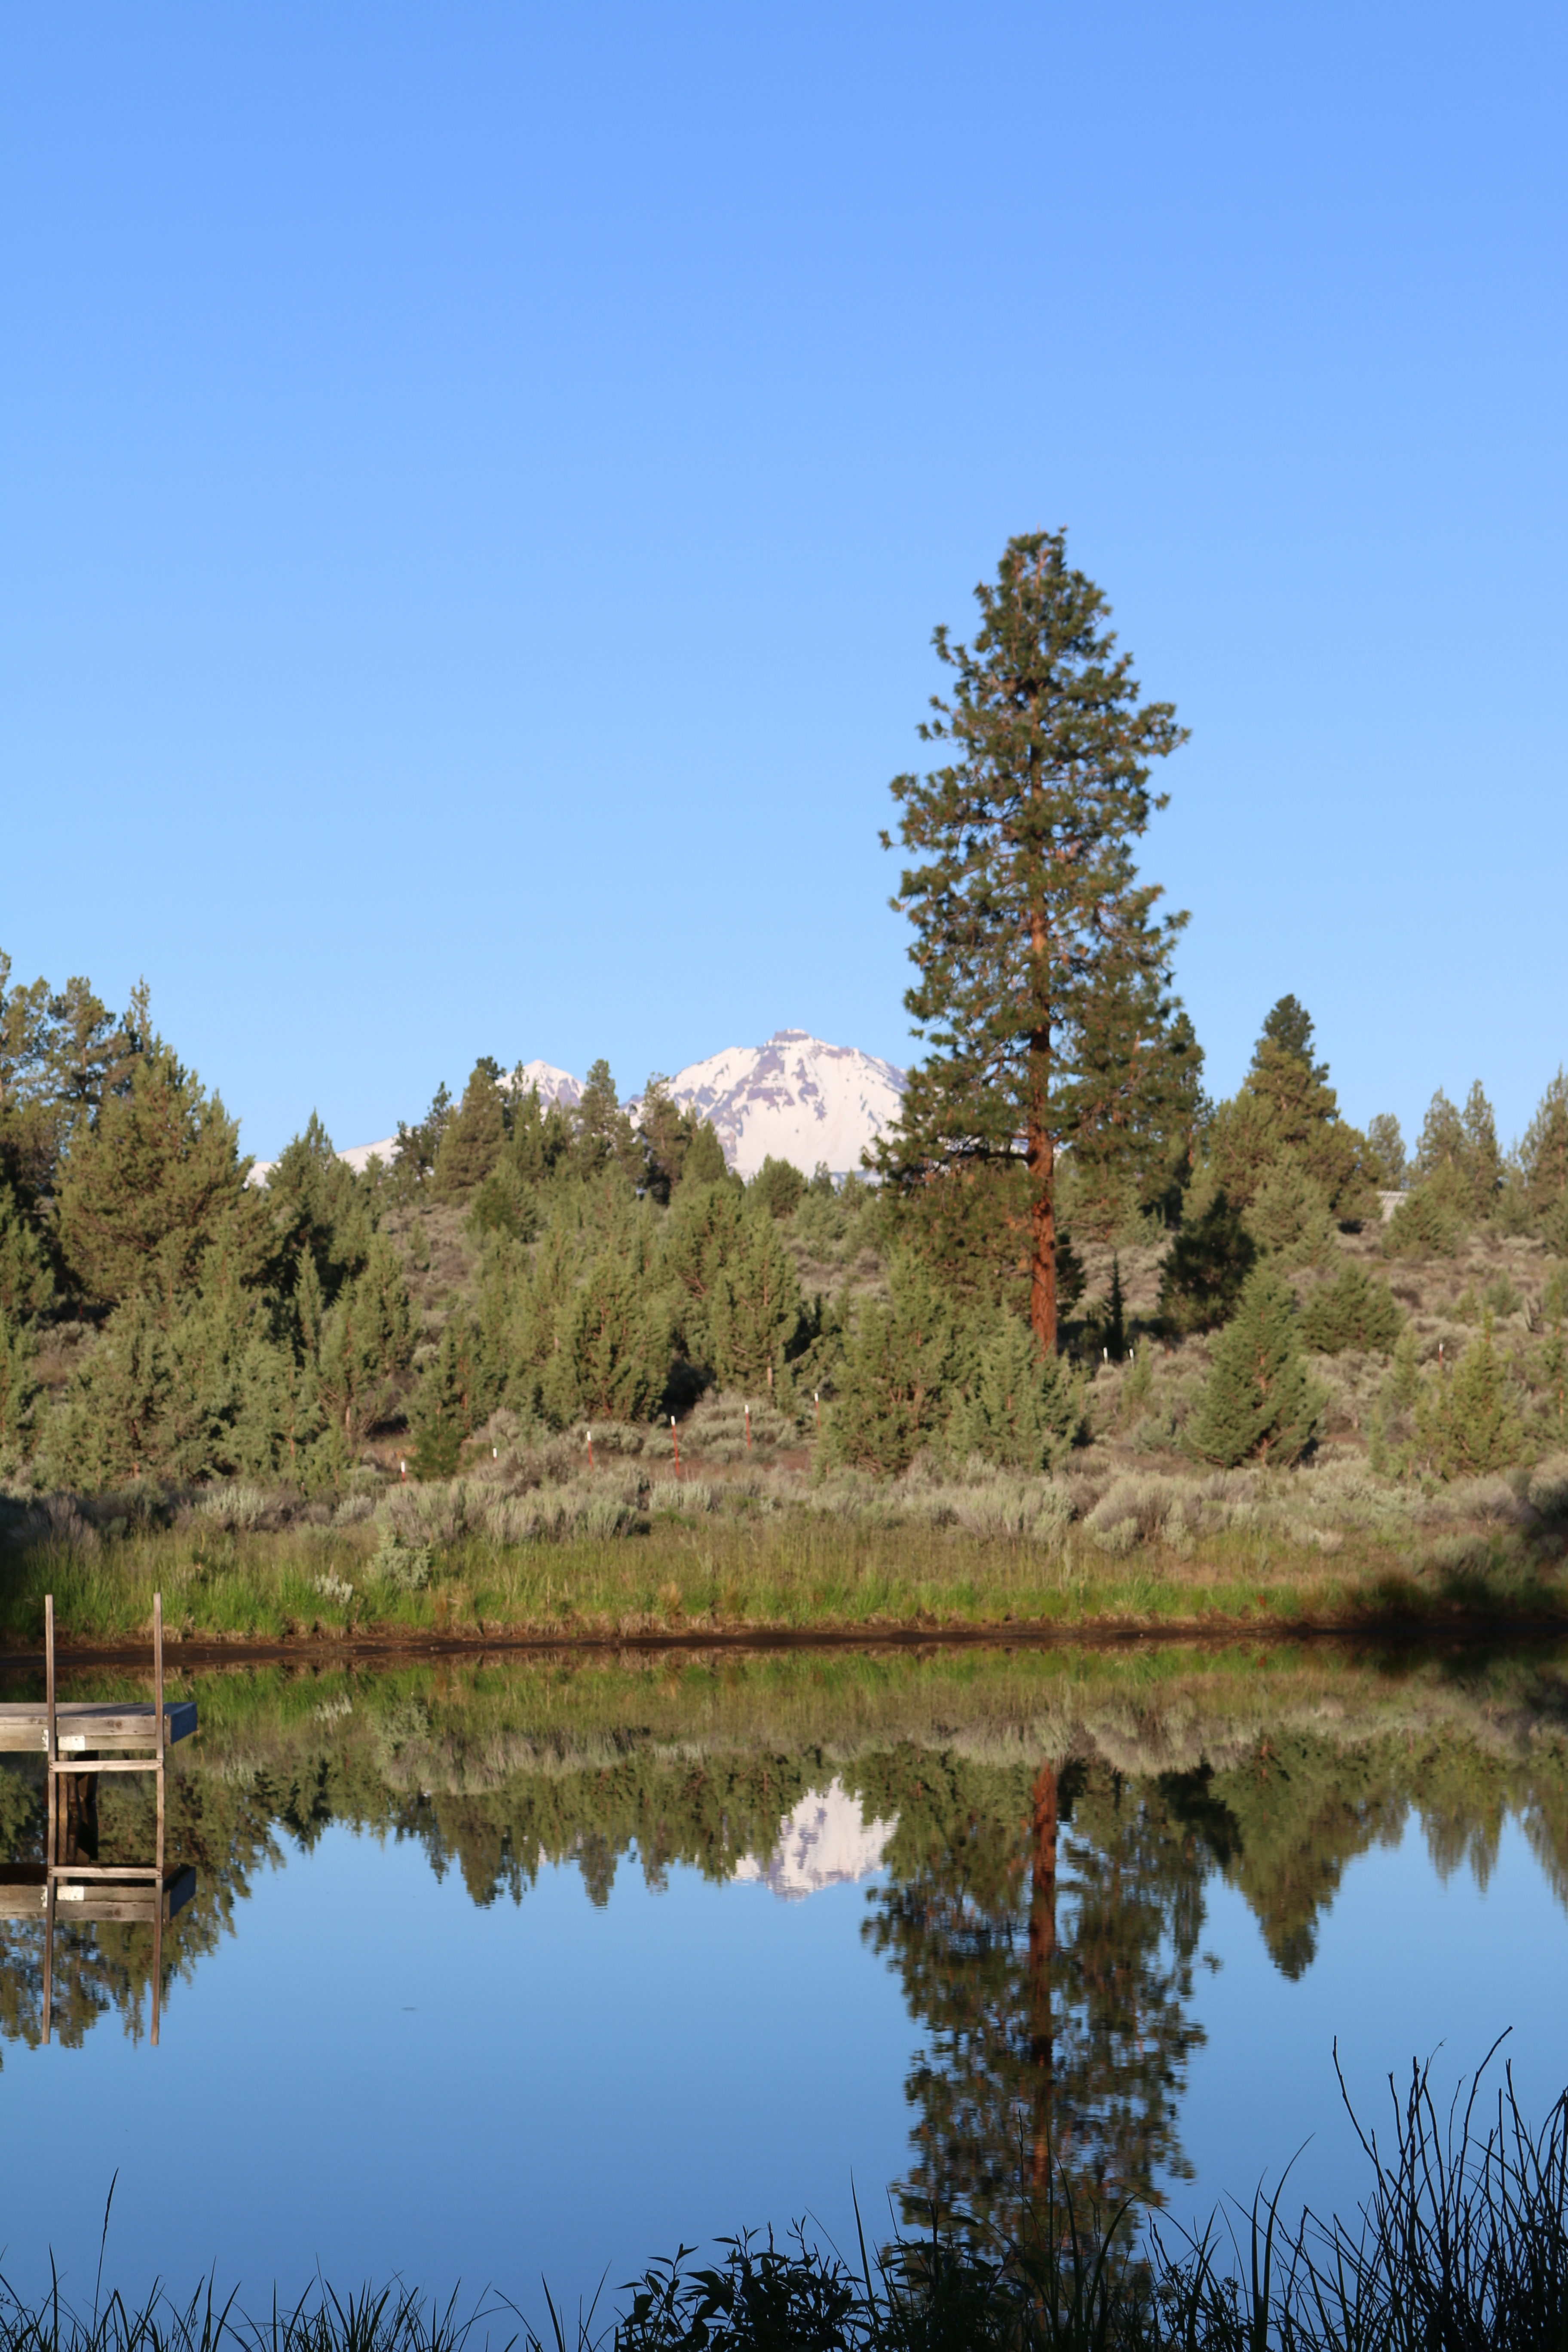 A mountain behind a forest, both reflected in a lake.